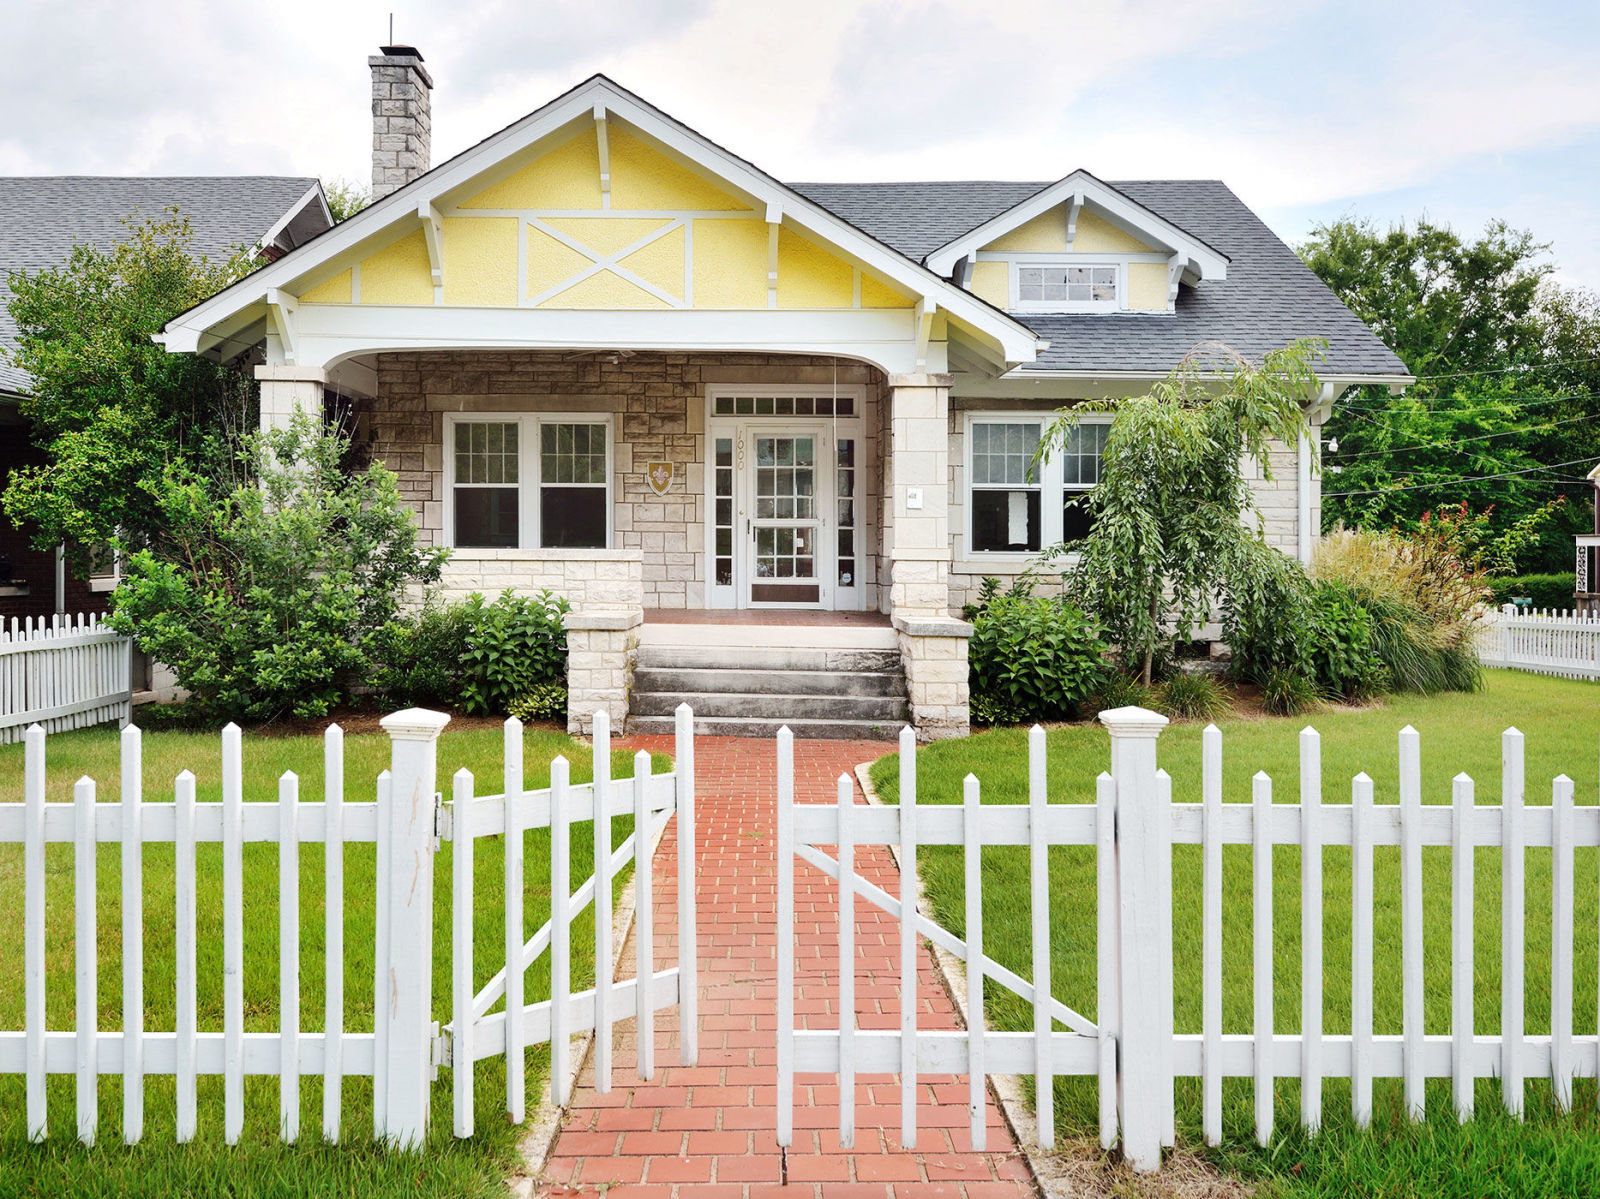 House with white picket fence